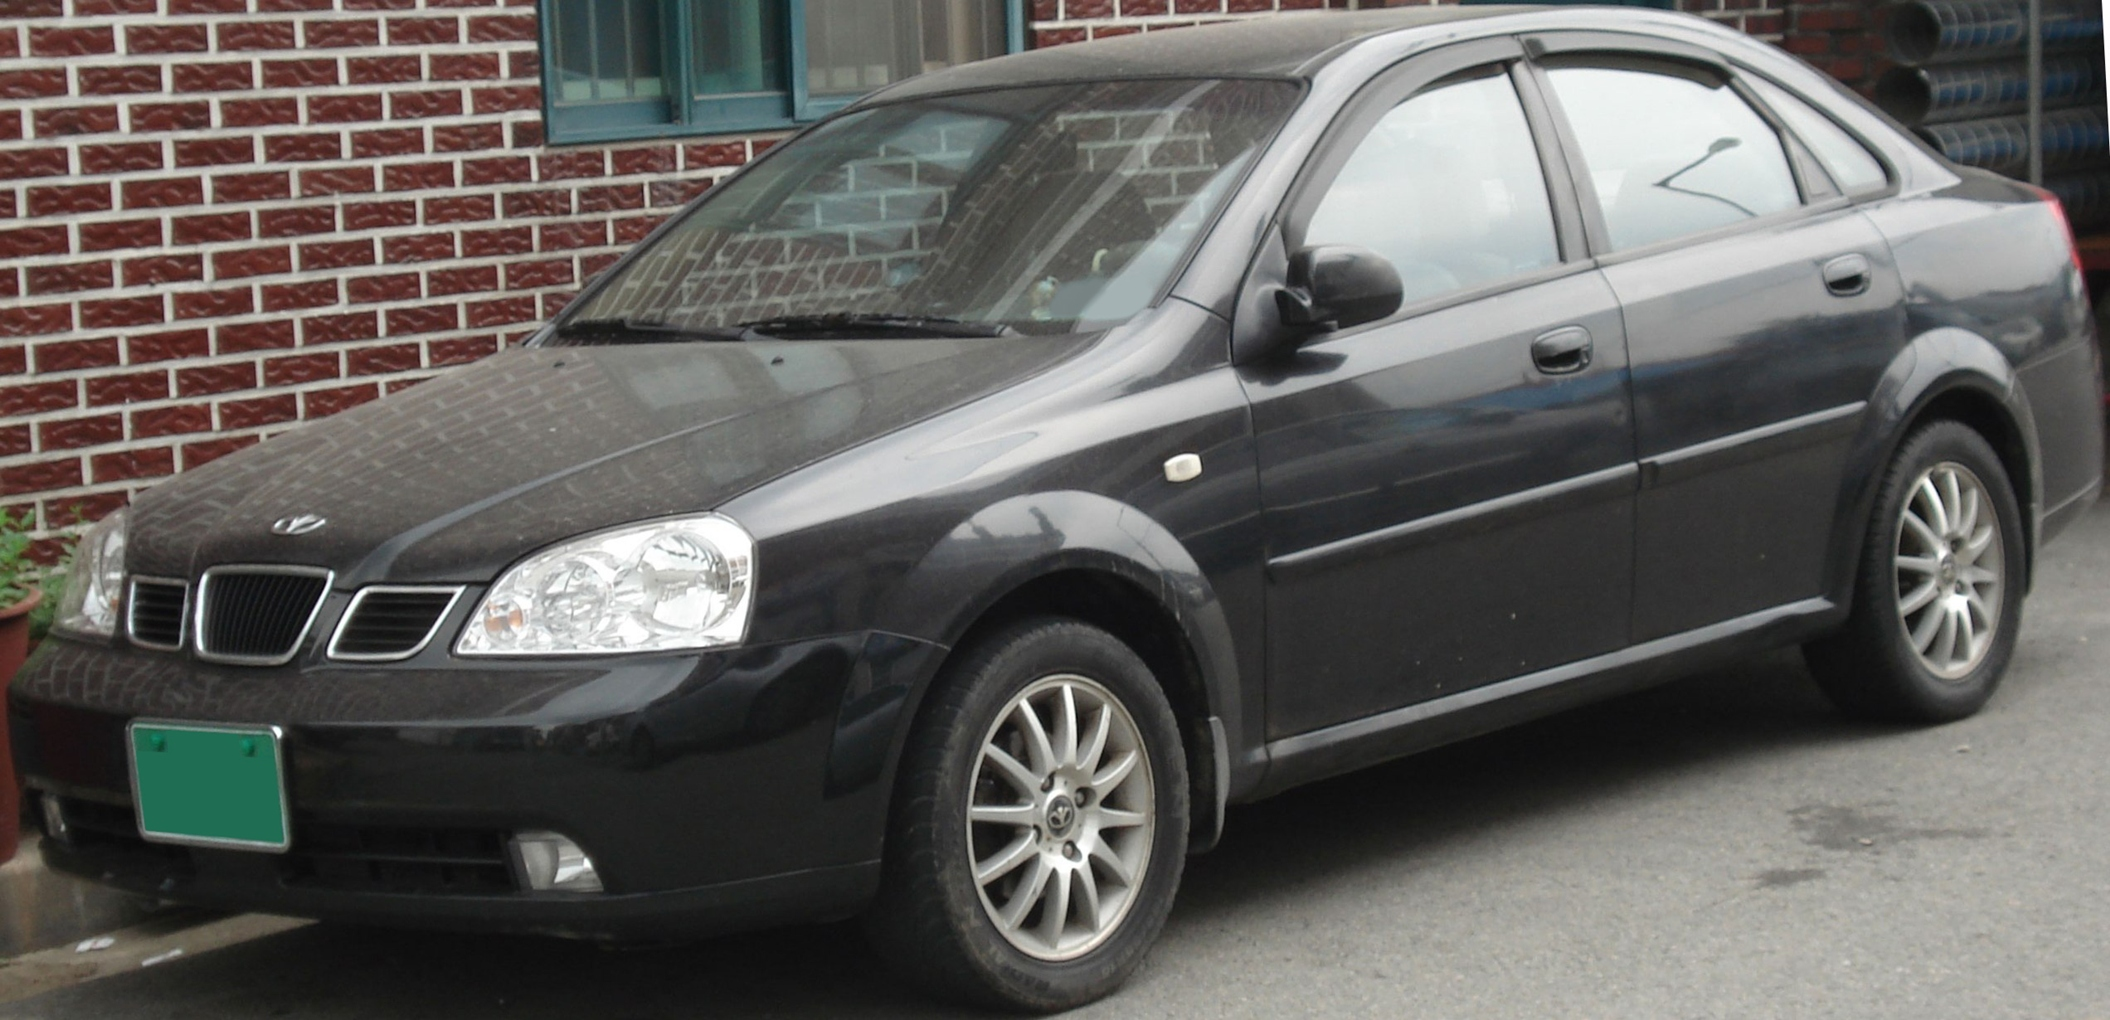 Pictures of daewoo lacetti #5